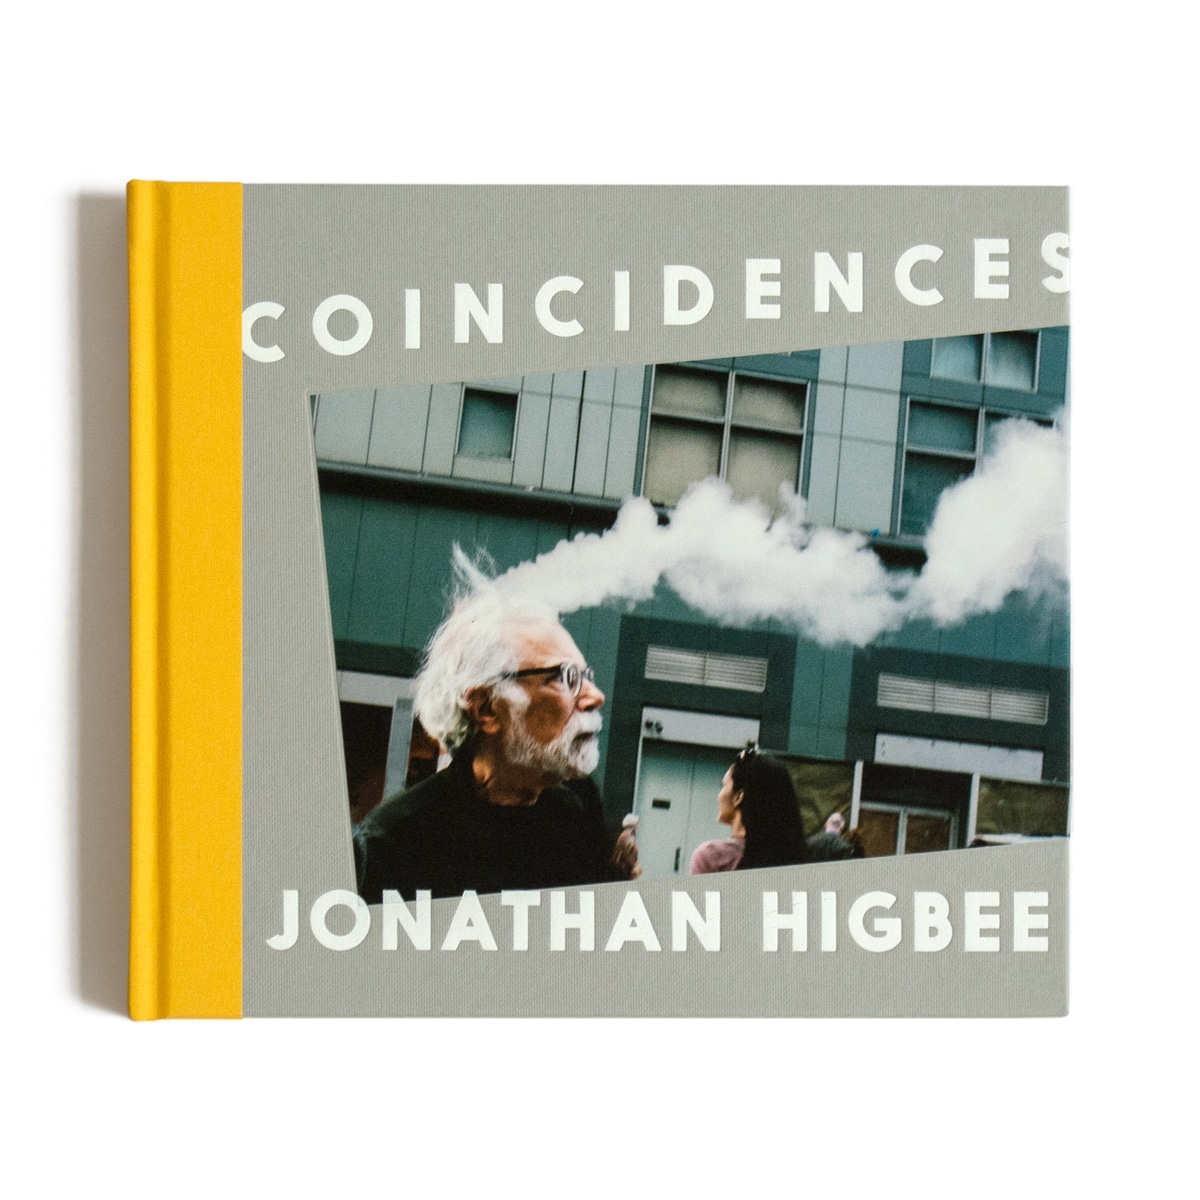 Coincides by Jonathan Higbee